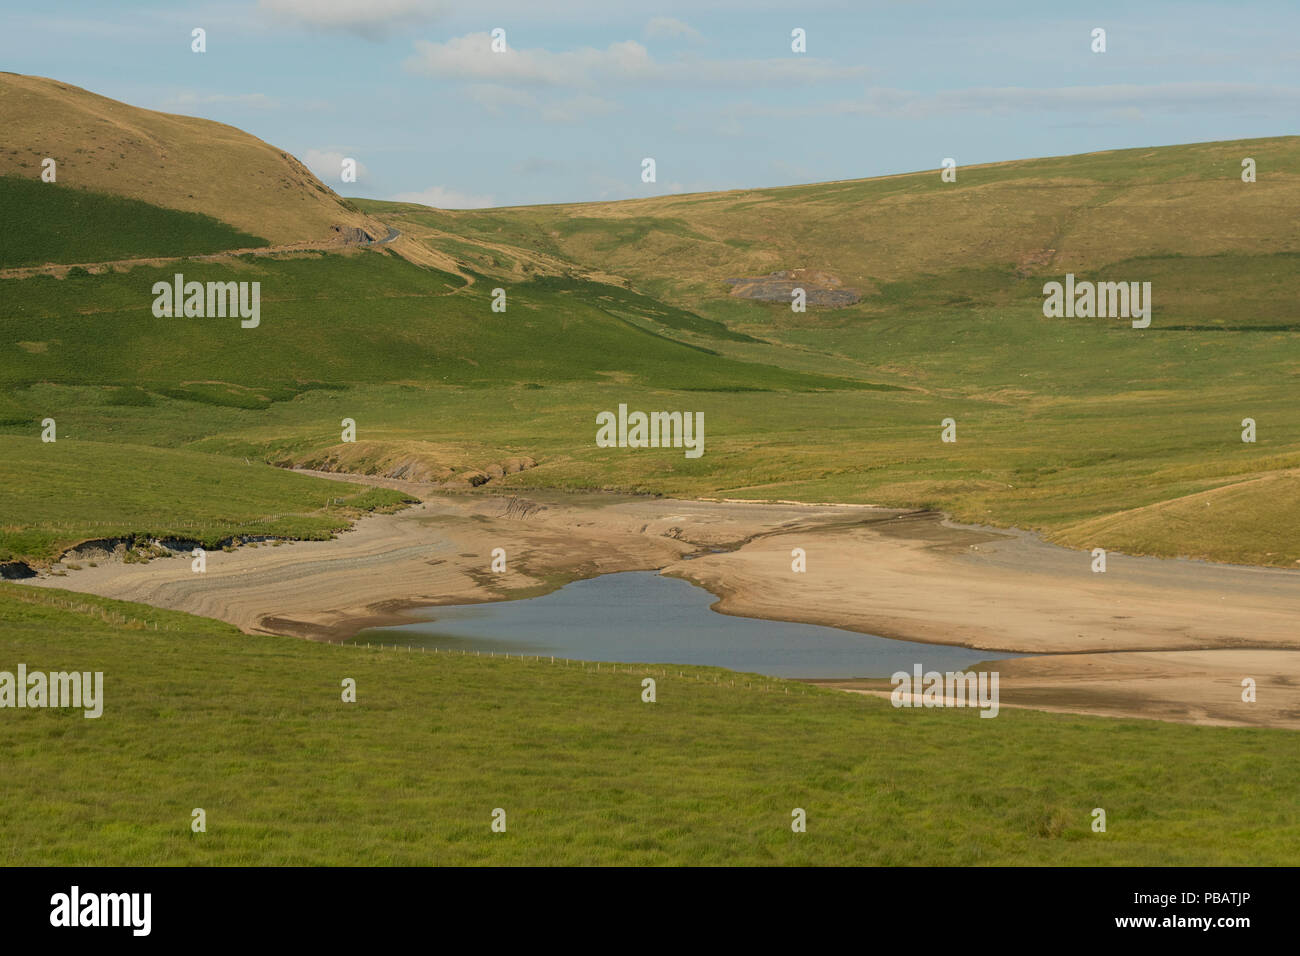 Summer heatwave 2018: Very low water levels at in the Craig Goch reservoir, the upper part of The Elan Valley system, Powys , Mid Wales UK. The Elan Valley system of dams and reservoirs supplies 133 billion litres of water a year via a gravity fed pipeline to Birmingham - Stock Image